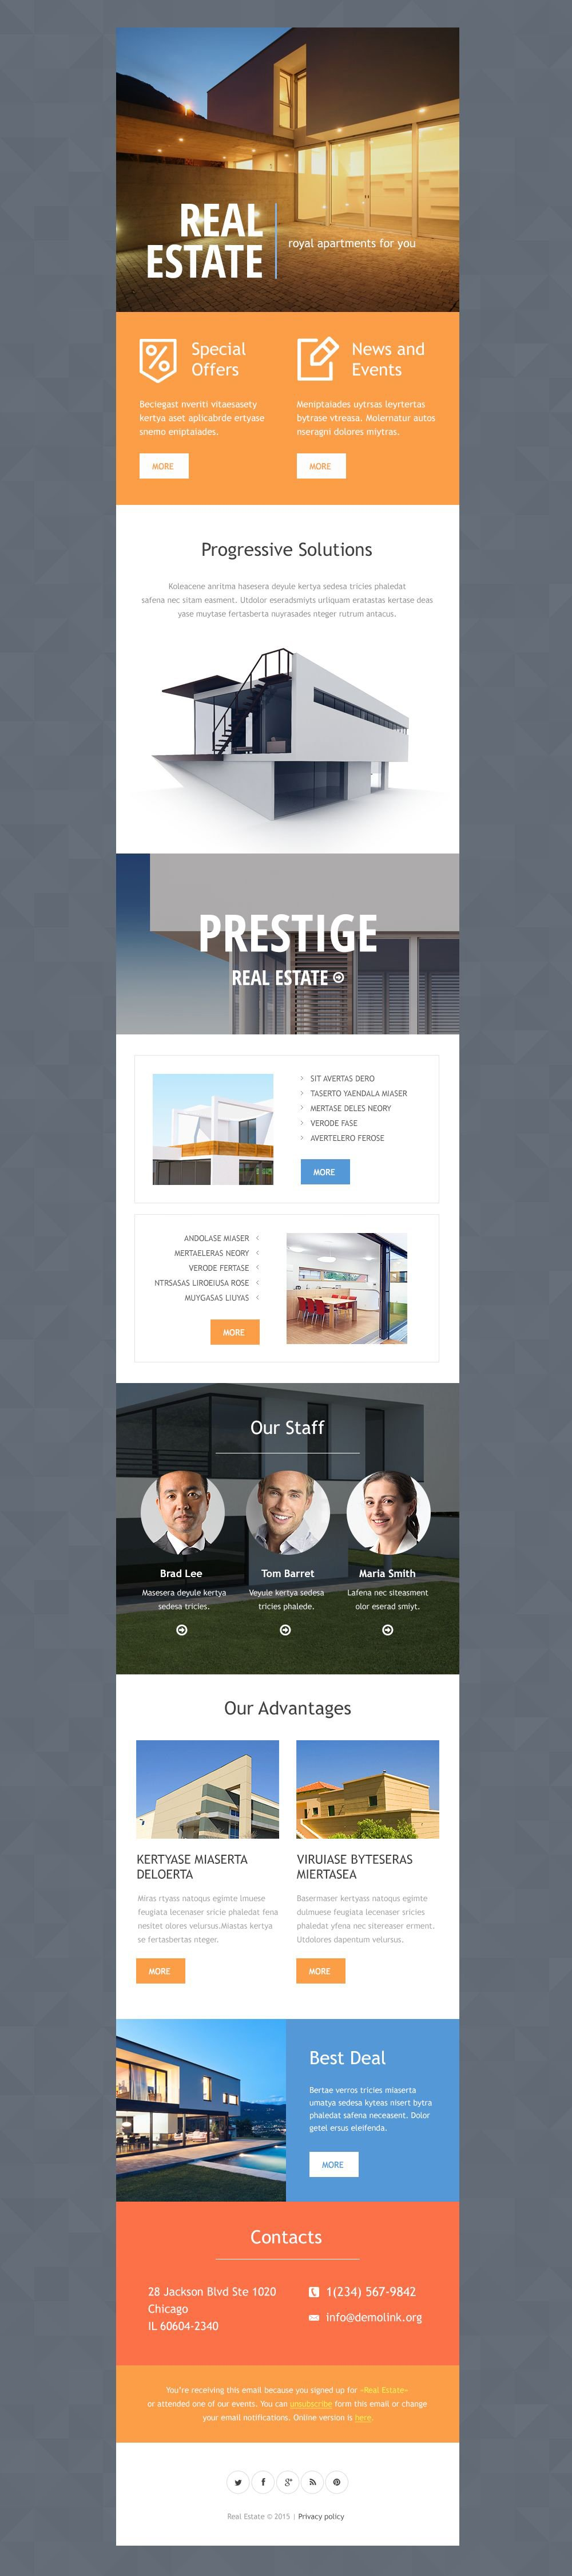 Real Estate Agency Responsive Newsletter Template 53671 – Real Estate Newsletter Template